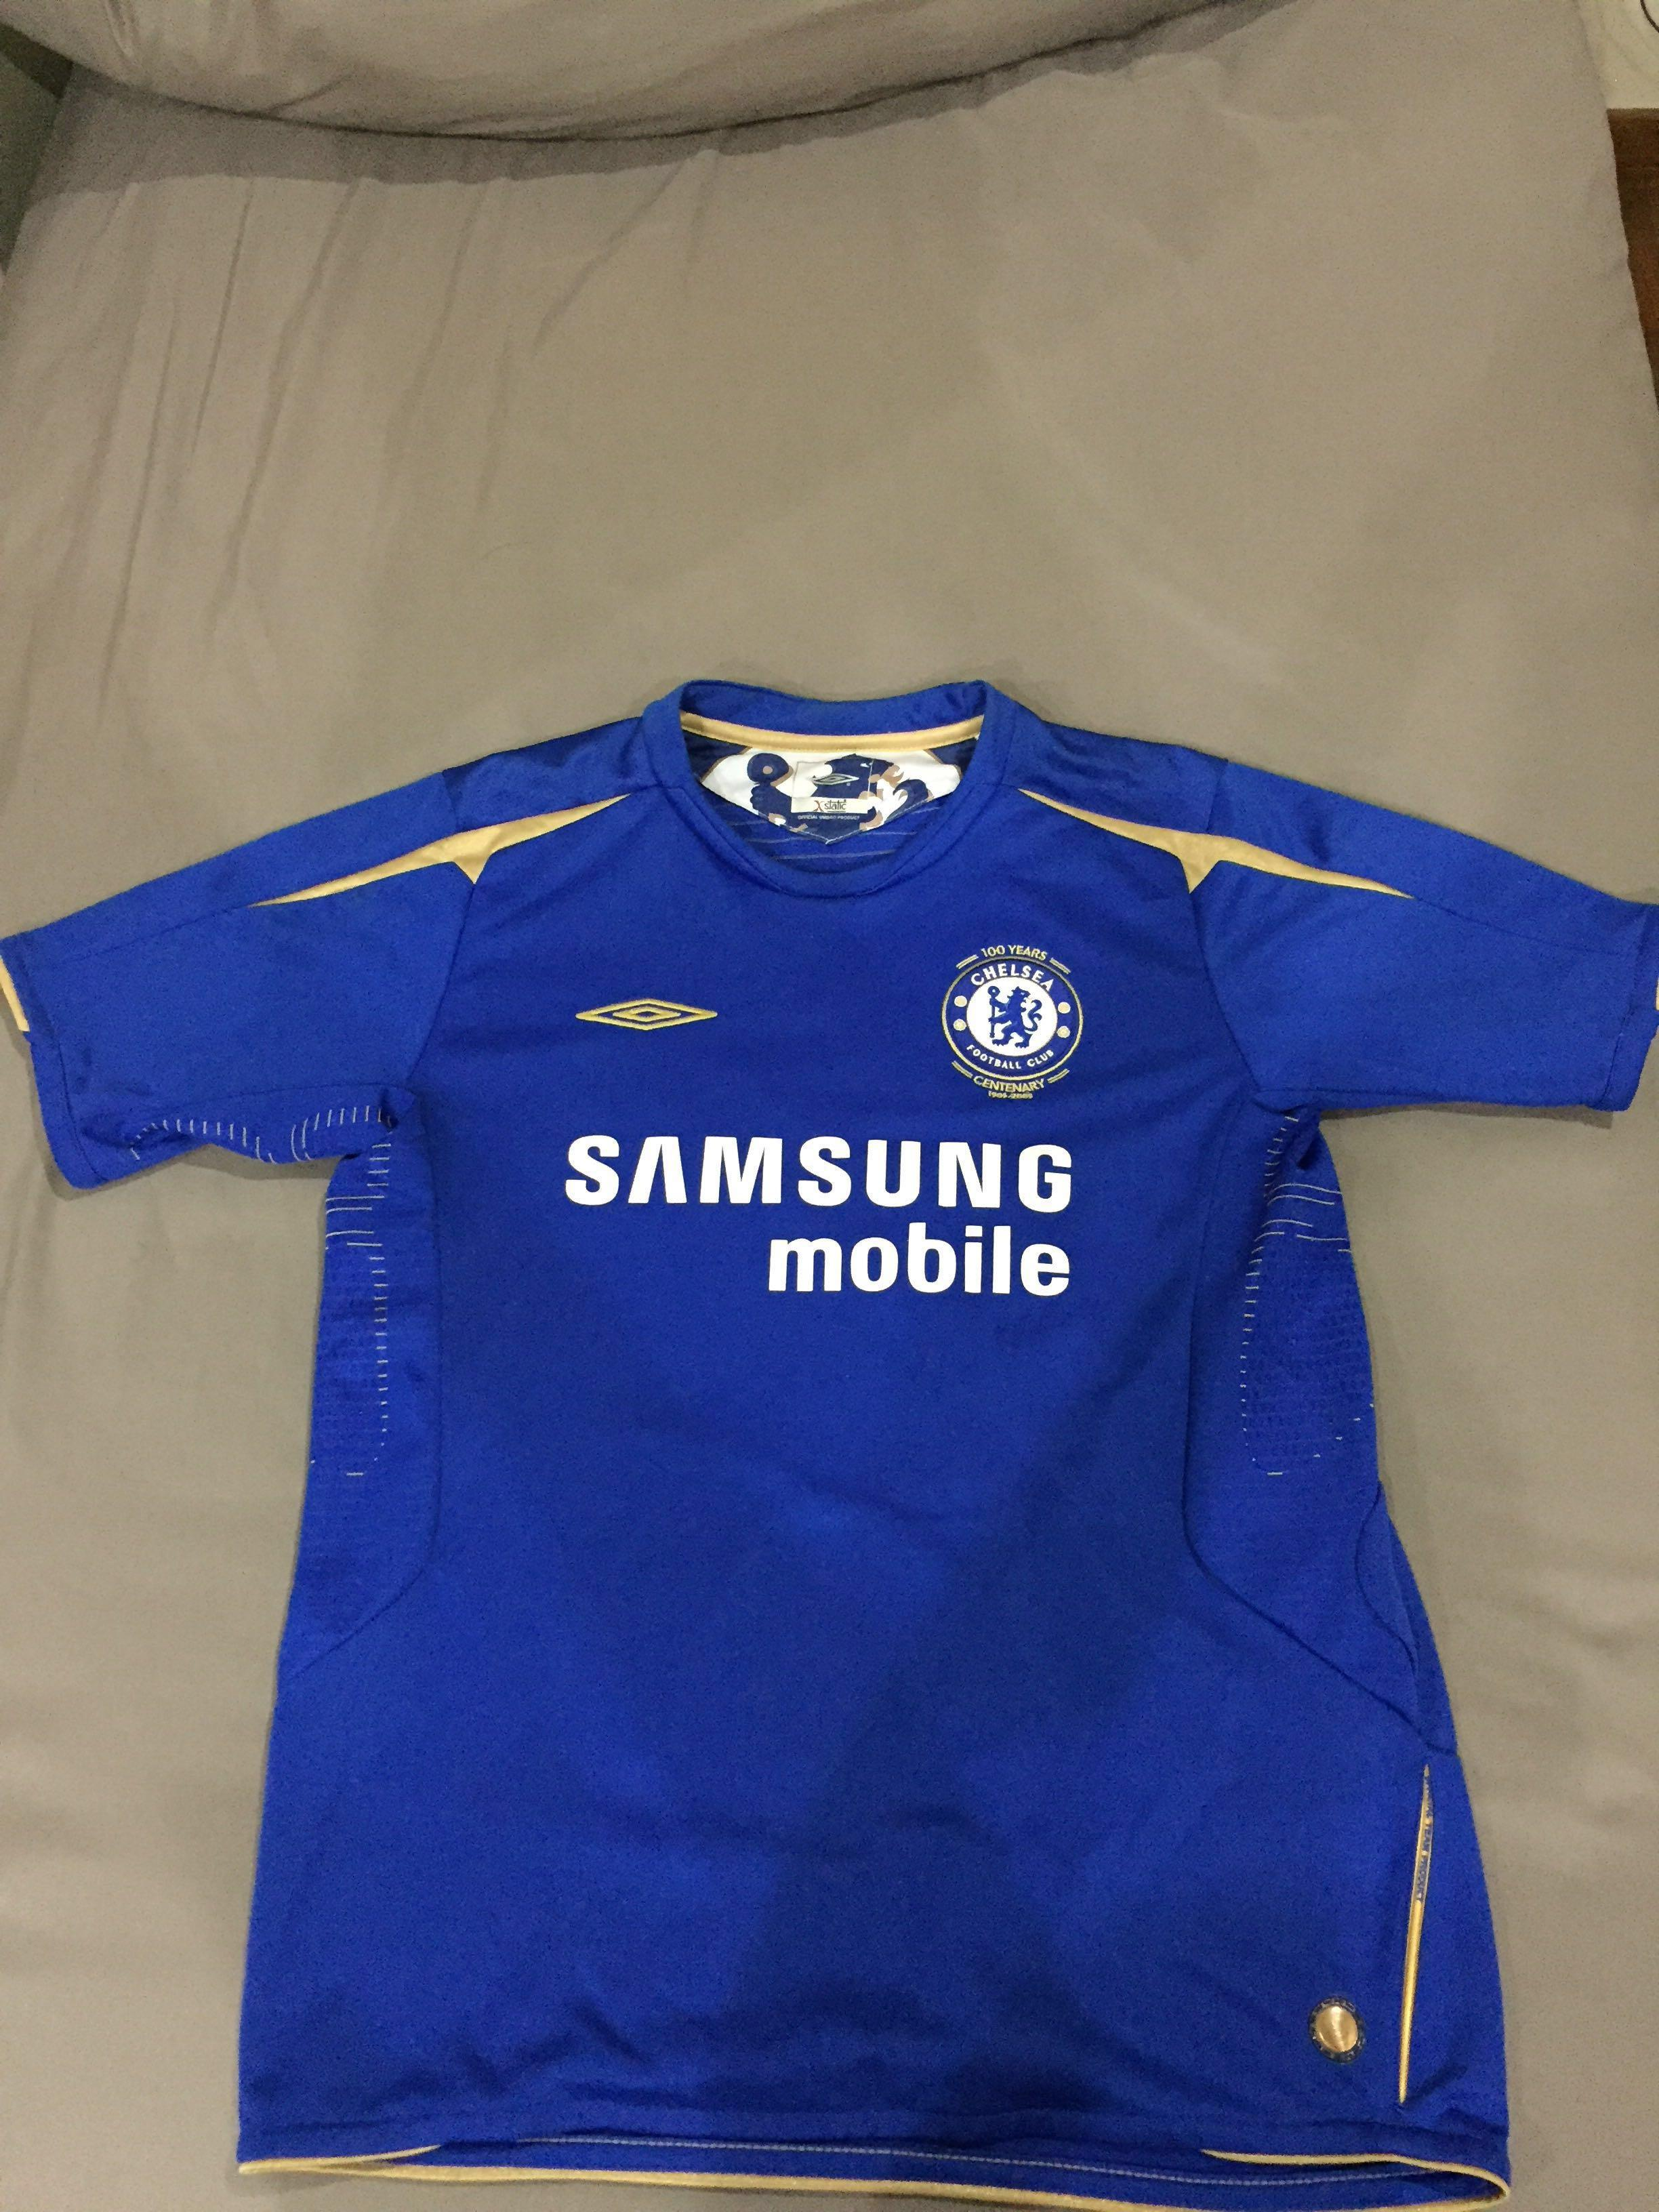 low priced 605fb e1c6d Chelsea Centenary shirt, Sports, Sports Apparel on Carousell